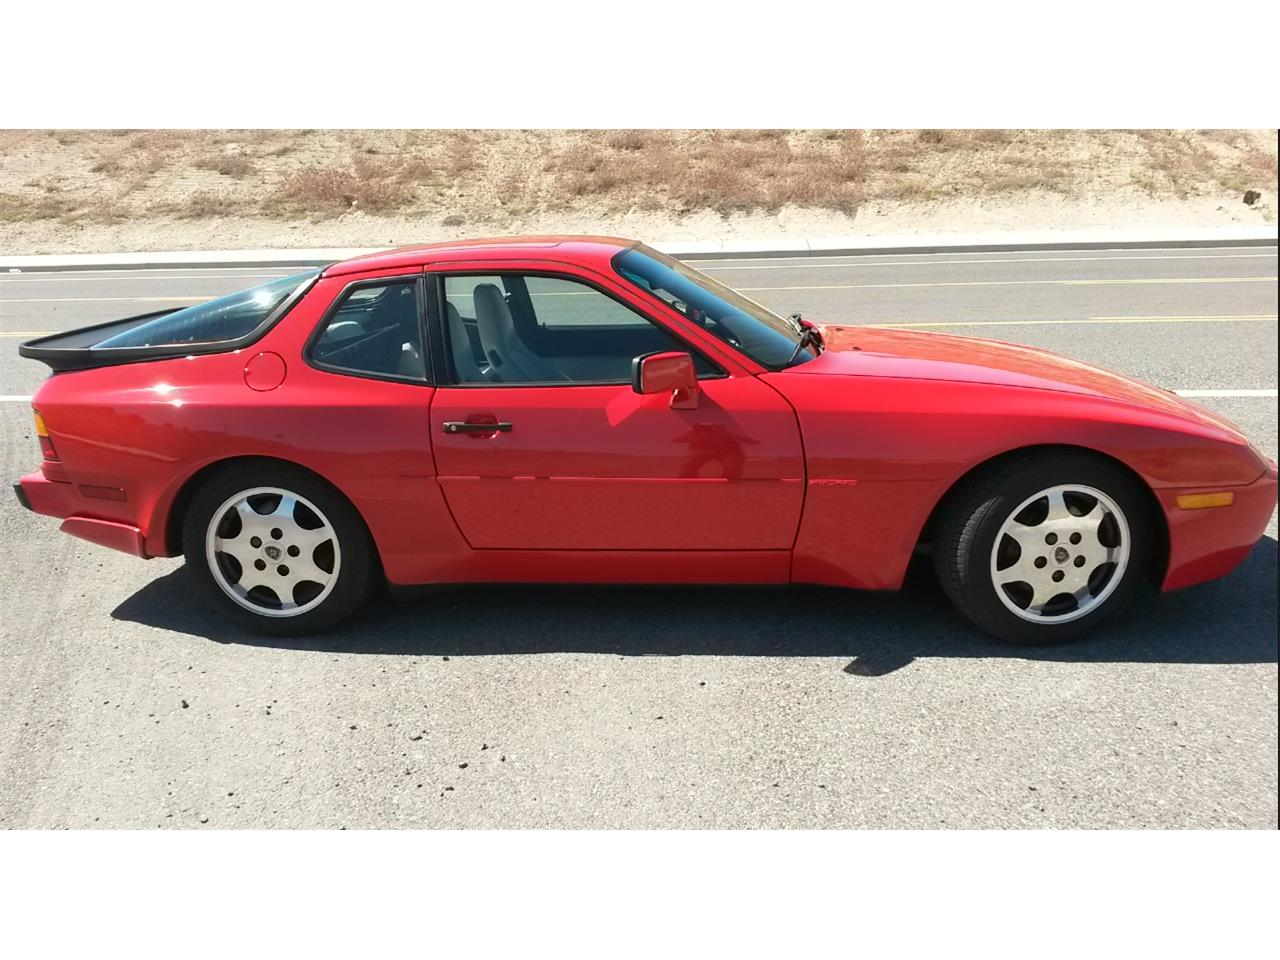 Large Picture of 1989 944S2 located in Washington - $25,000.00 Offered by a Private Seller - L7PM